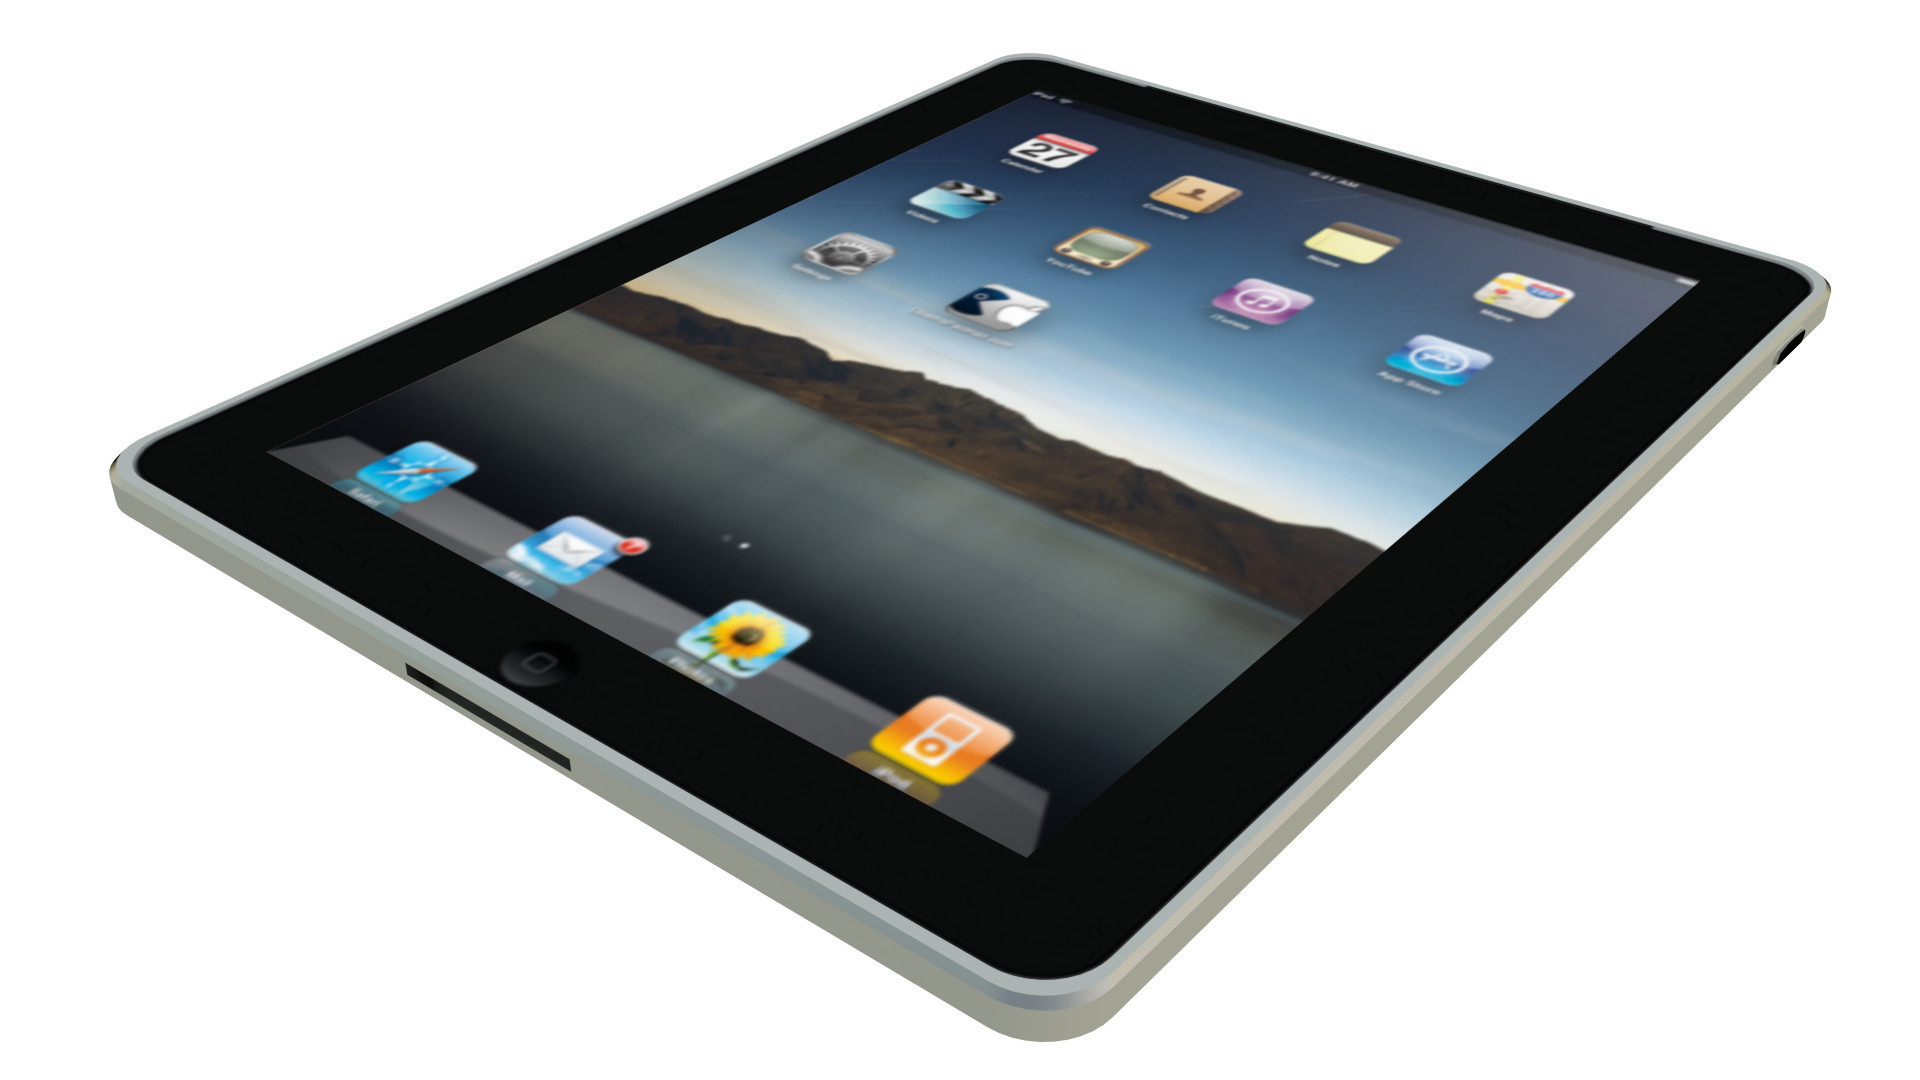 iPad---Screen-00.jpg